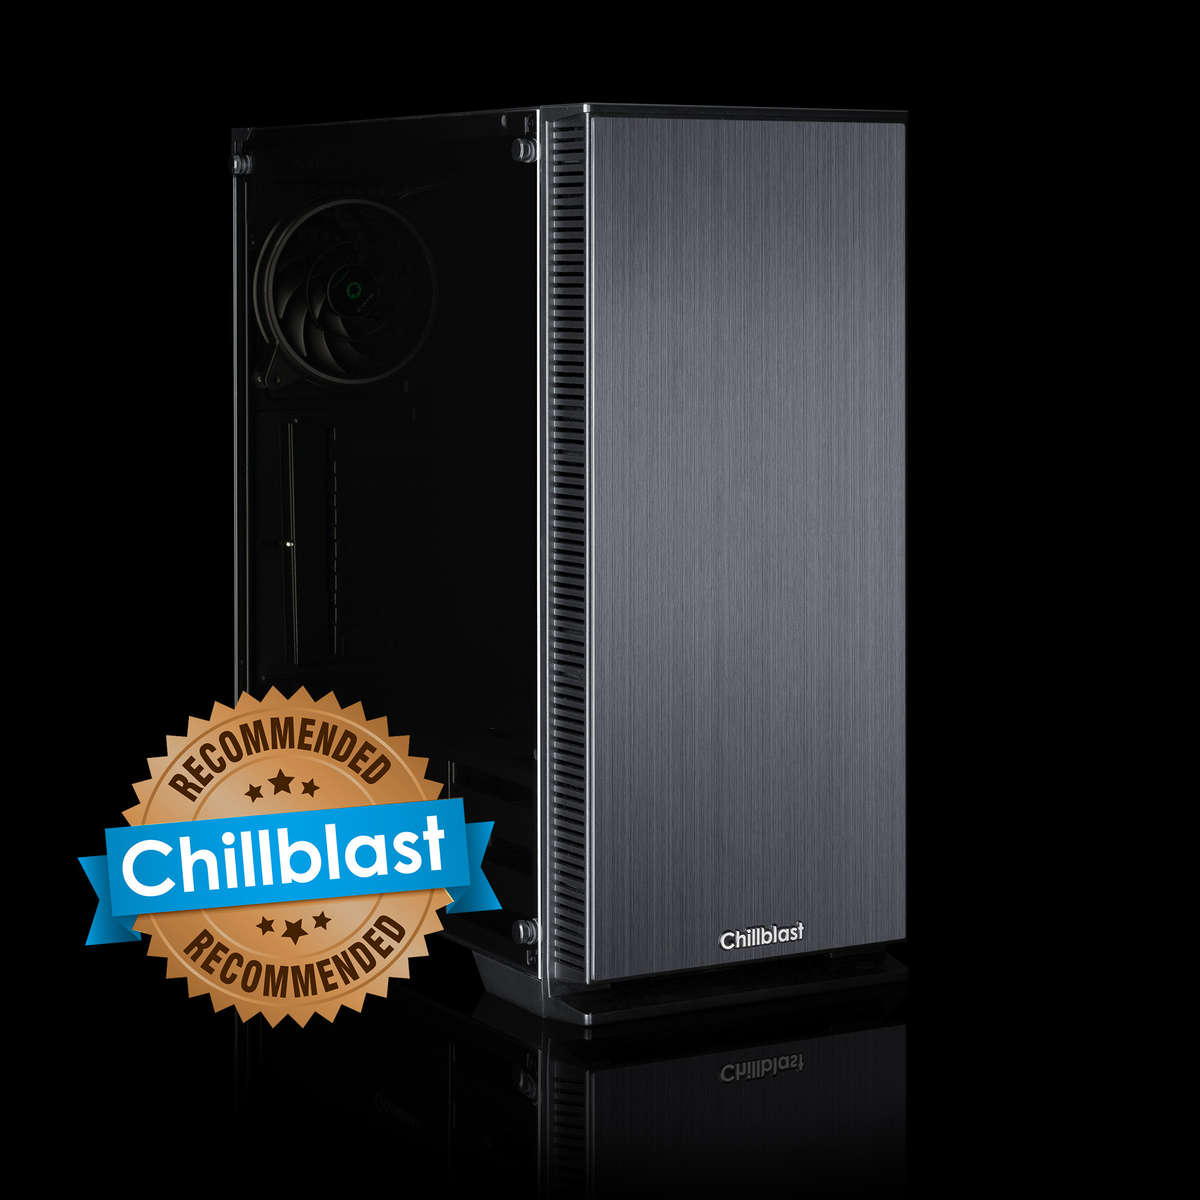 Image of the Chillblast Fusion Pentium G5400 Family PC against a dark background.